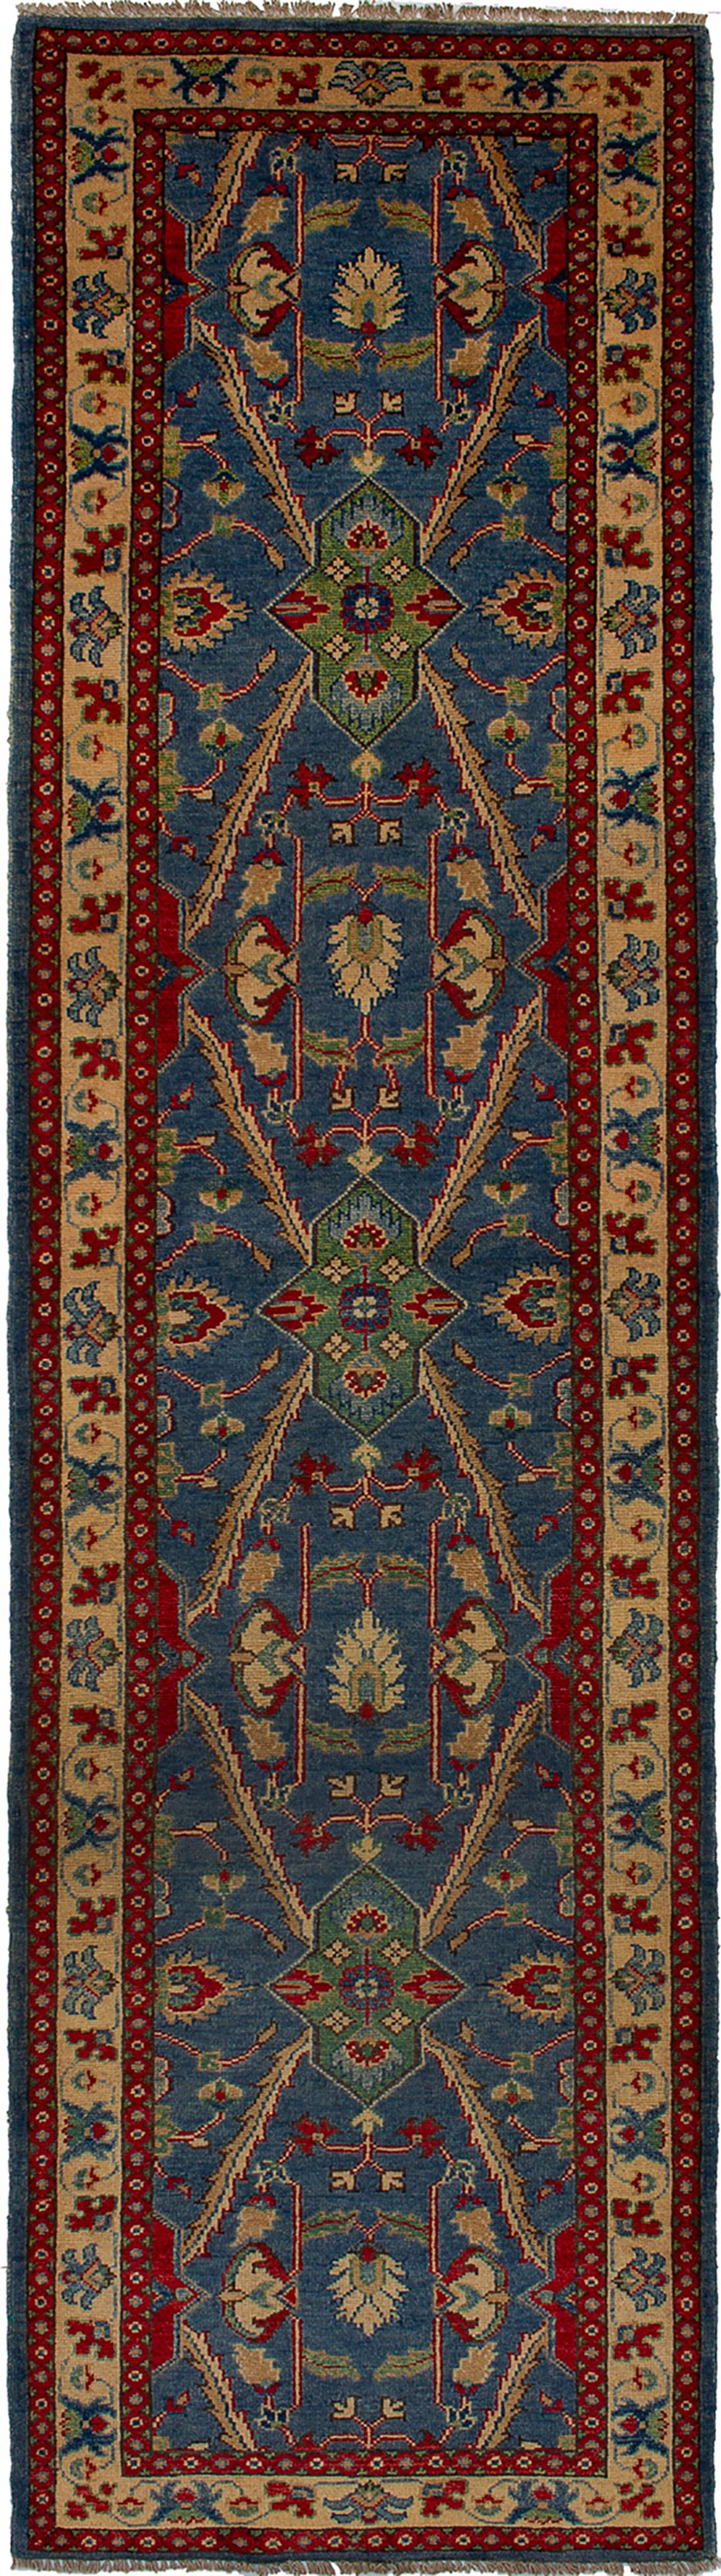 """Hand-knotted Finest Gazni Blue Wool Rug 2'9"""" x 10'3""""  Size: 2'9"""" x 10'3"""""""